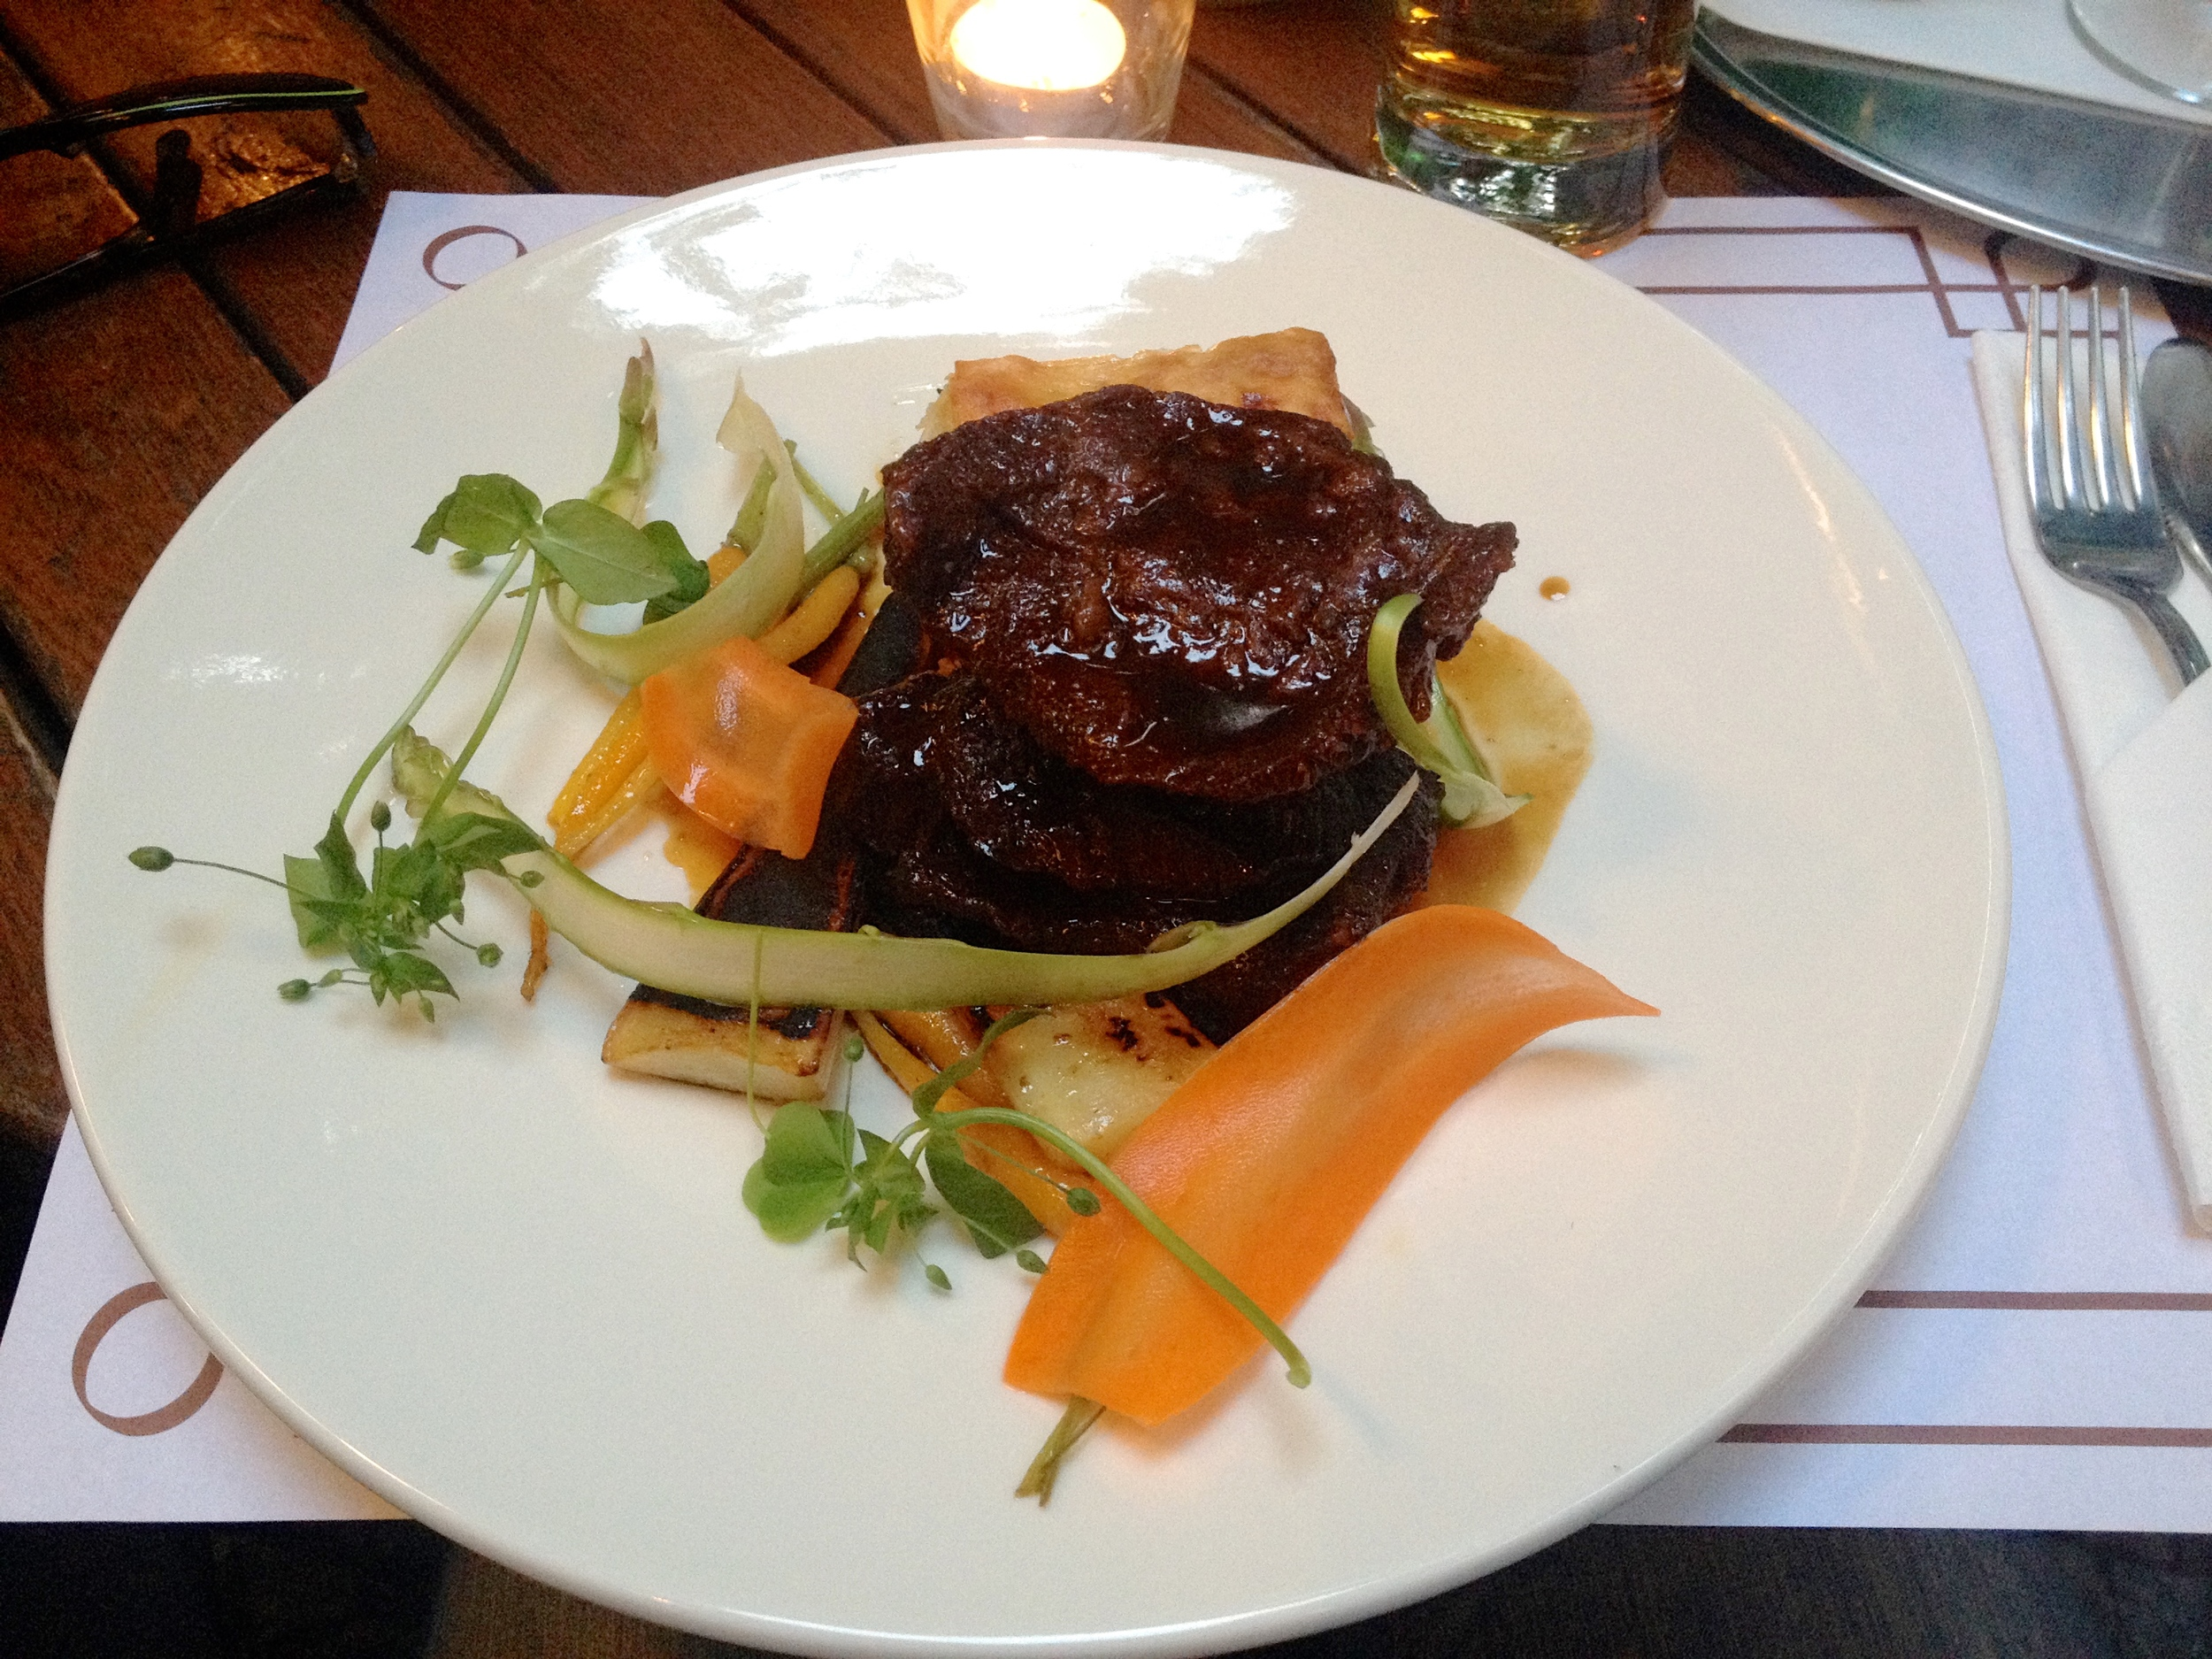 Beef cheeks with potatoes au gratin